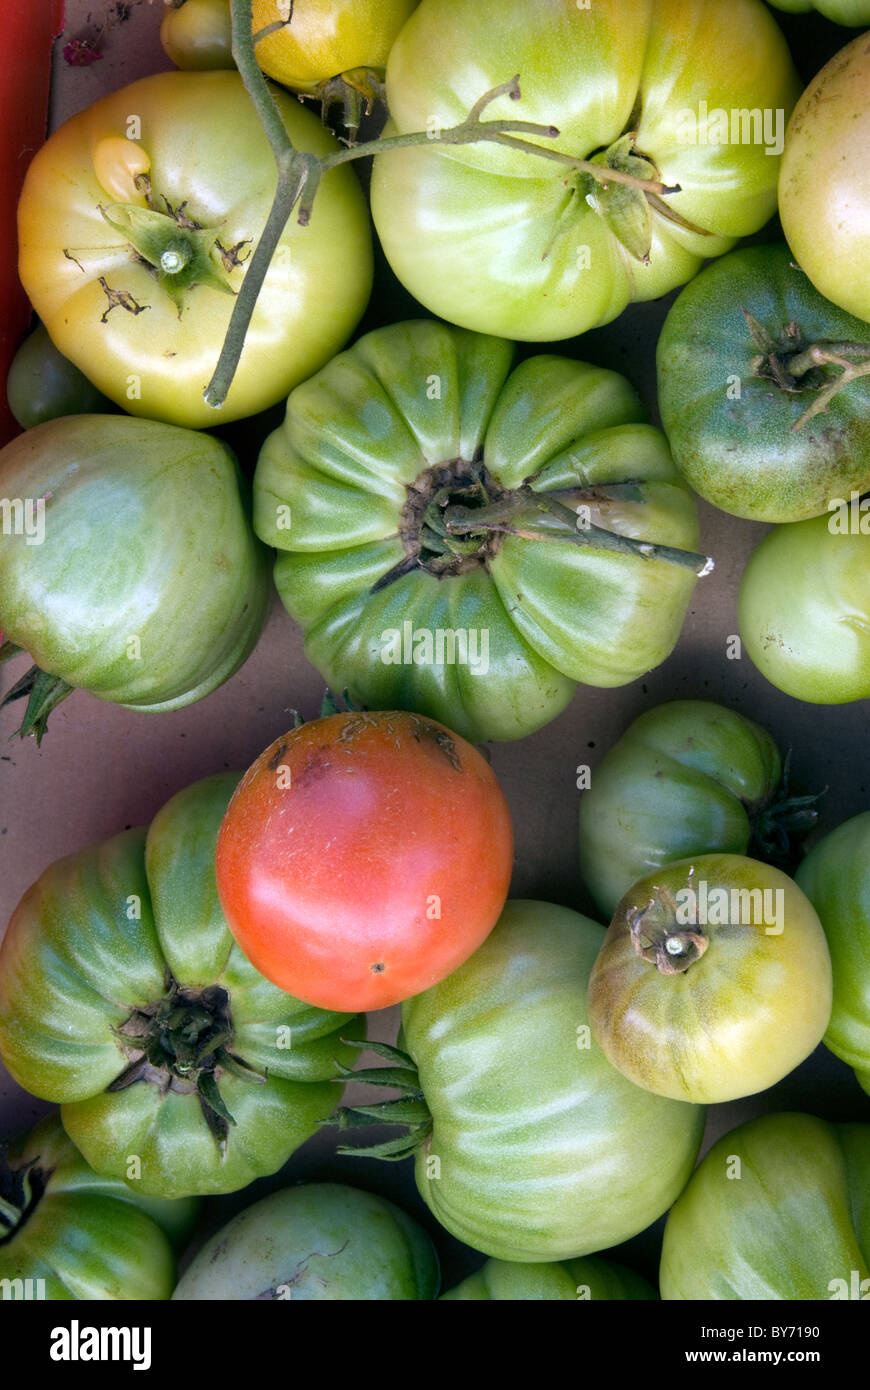 Fresh picked tomatoes from the garden, both ripe and unripened - Stock Image